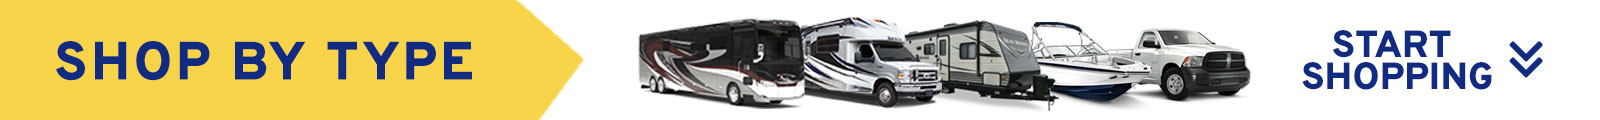 View RV Types Banner